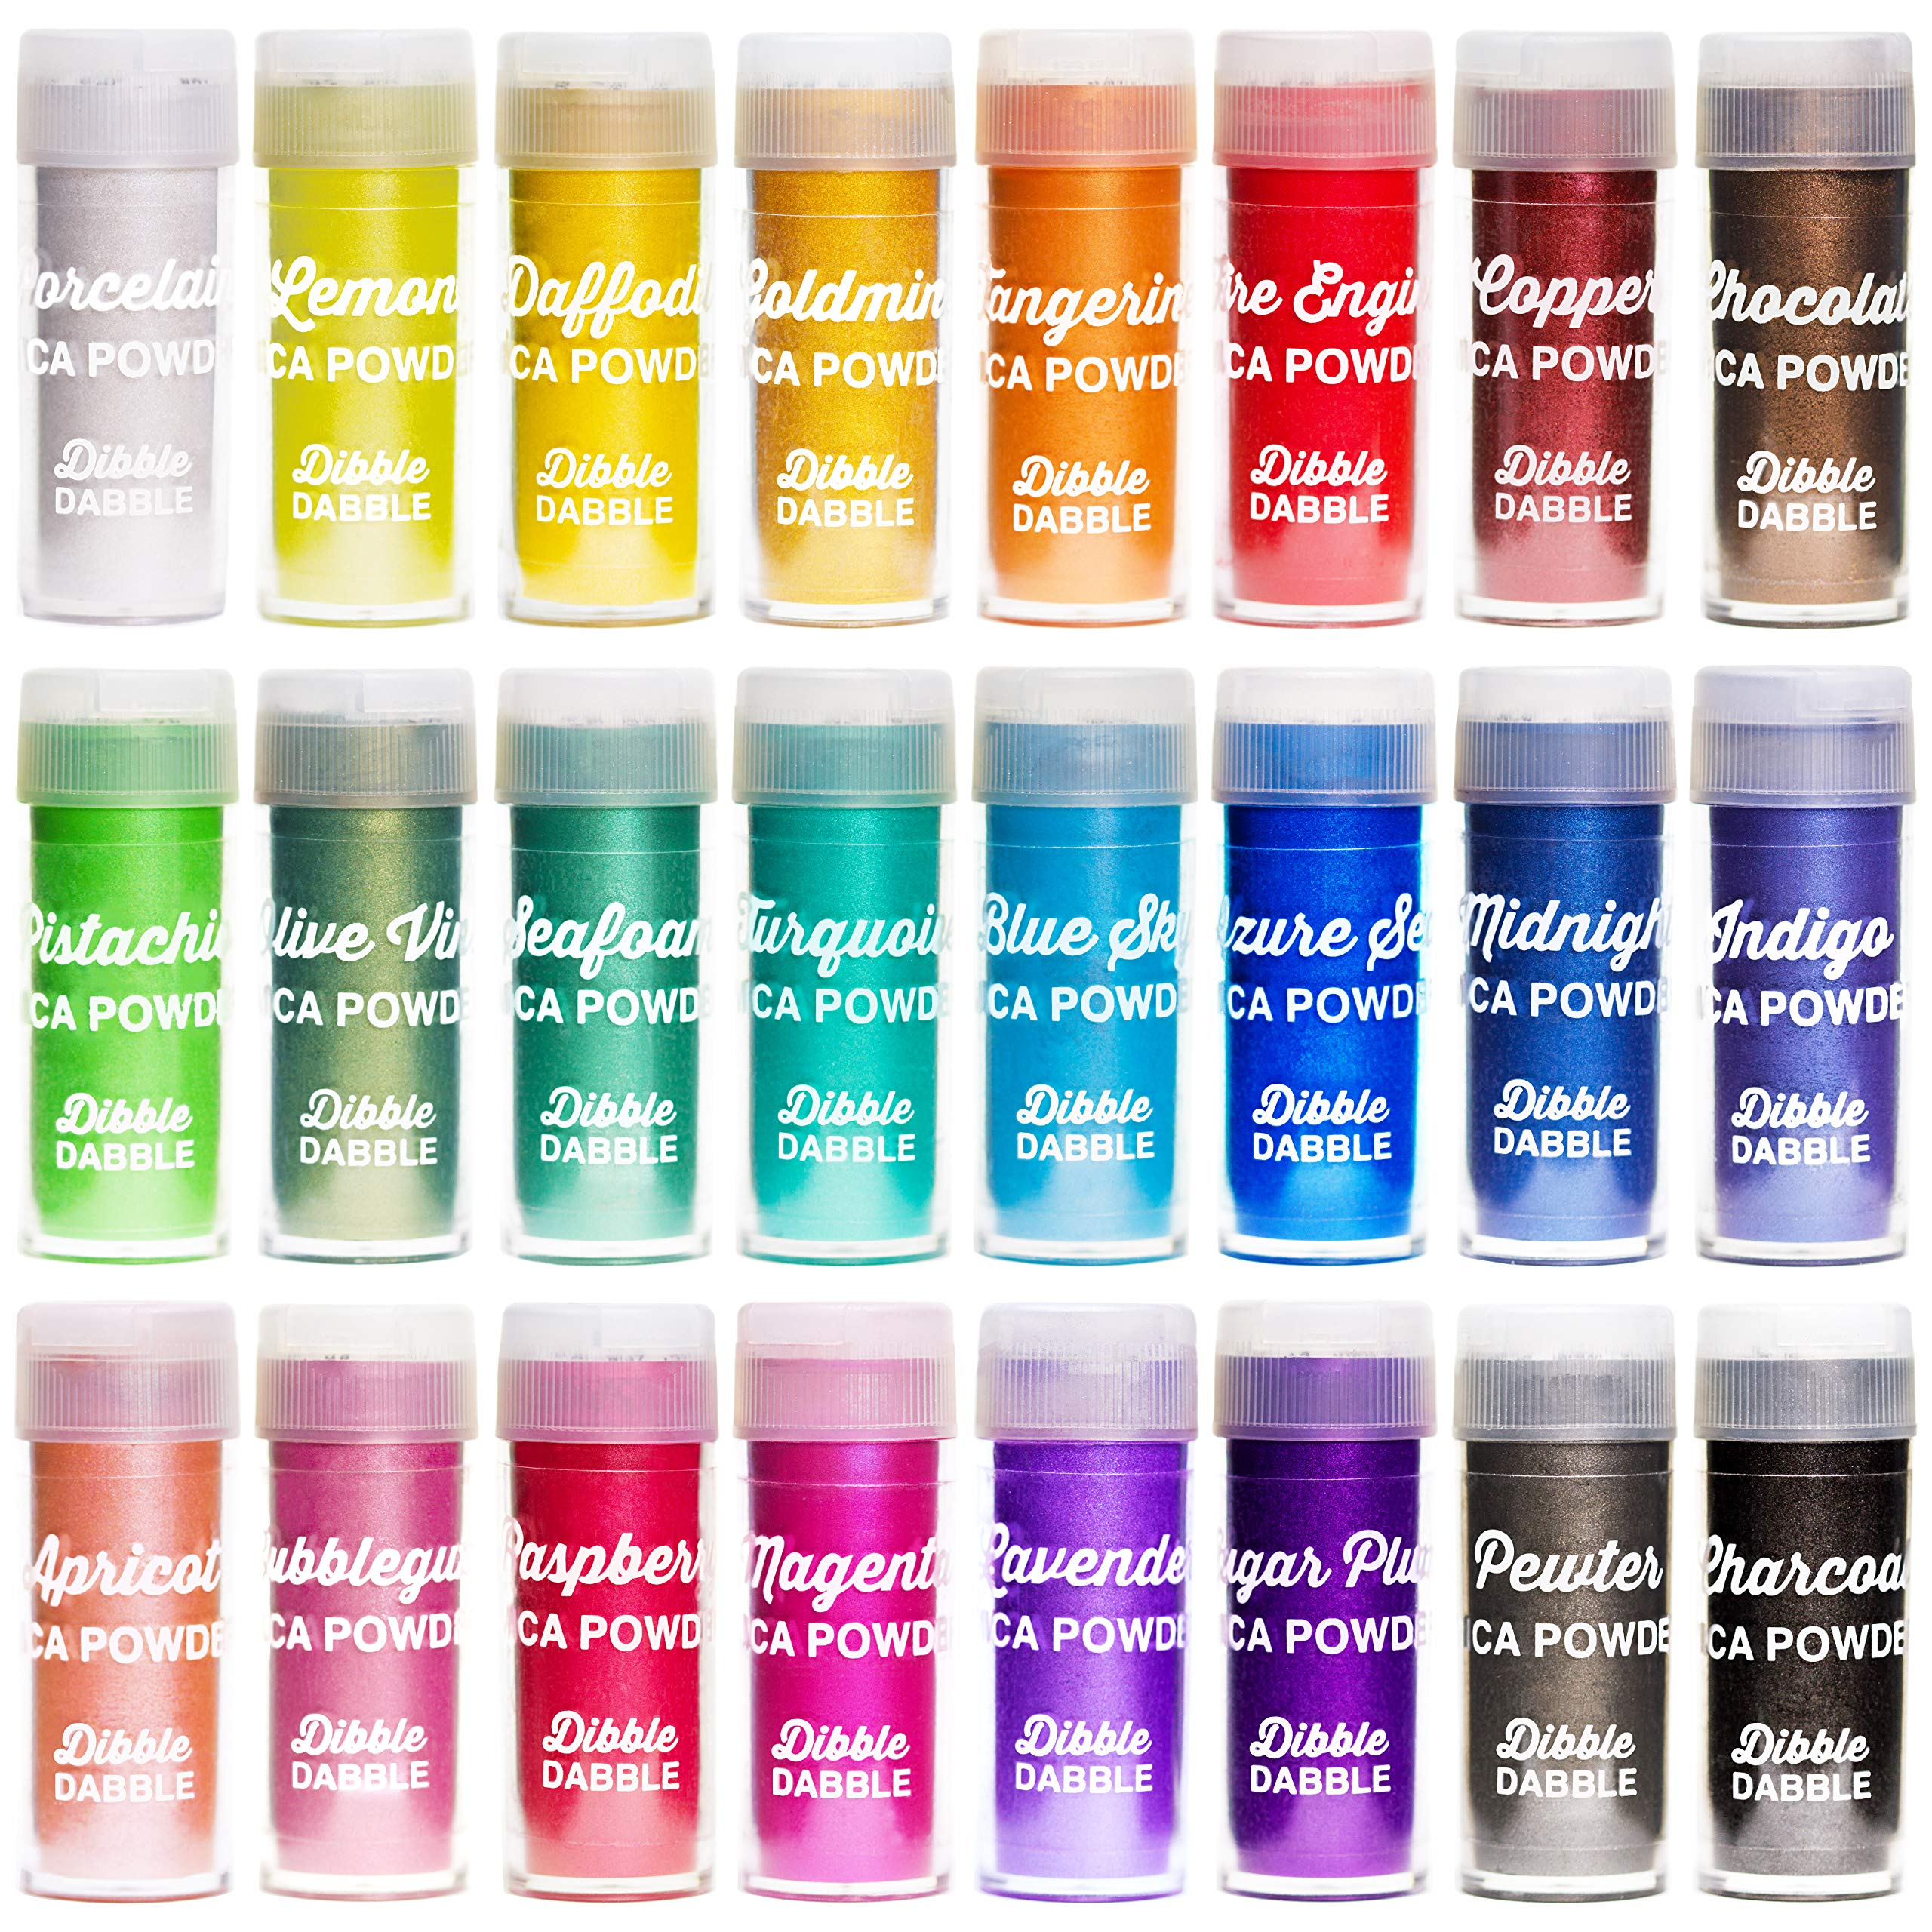 Dibble Dabble Mica Powder 24 Color Shake Jars – 240g Set - Cosmetic Grade Mica Pigment Powder for Soap Making, Epoxy Resin, Lip Gloss, Nails, Bath Bombs, Slime